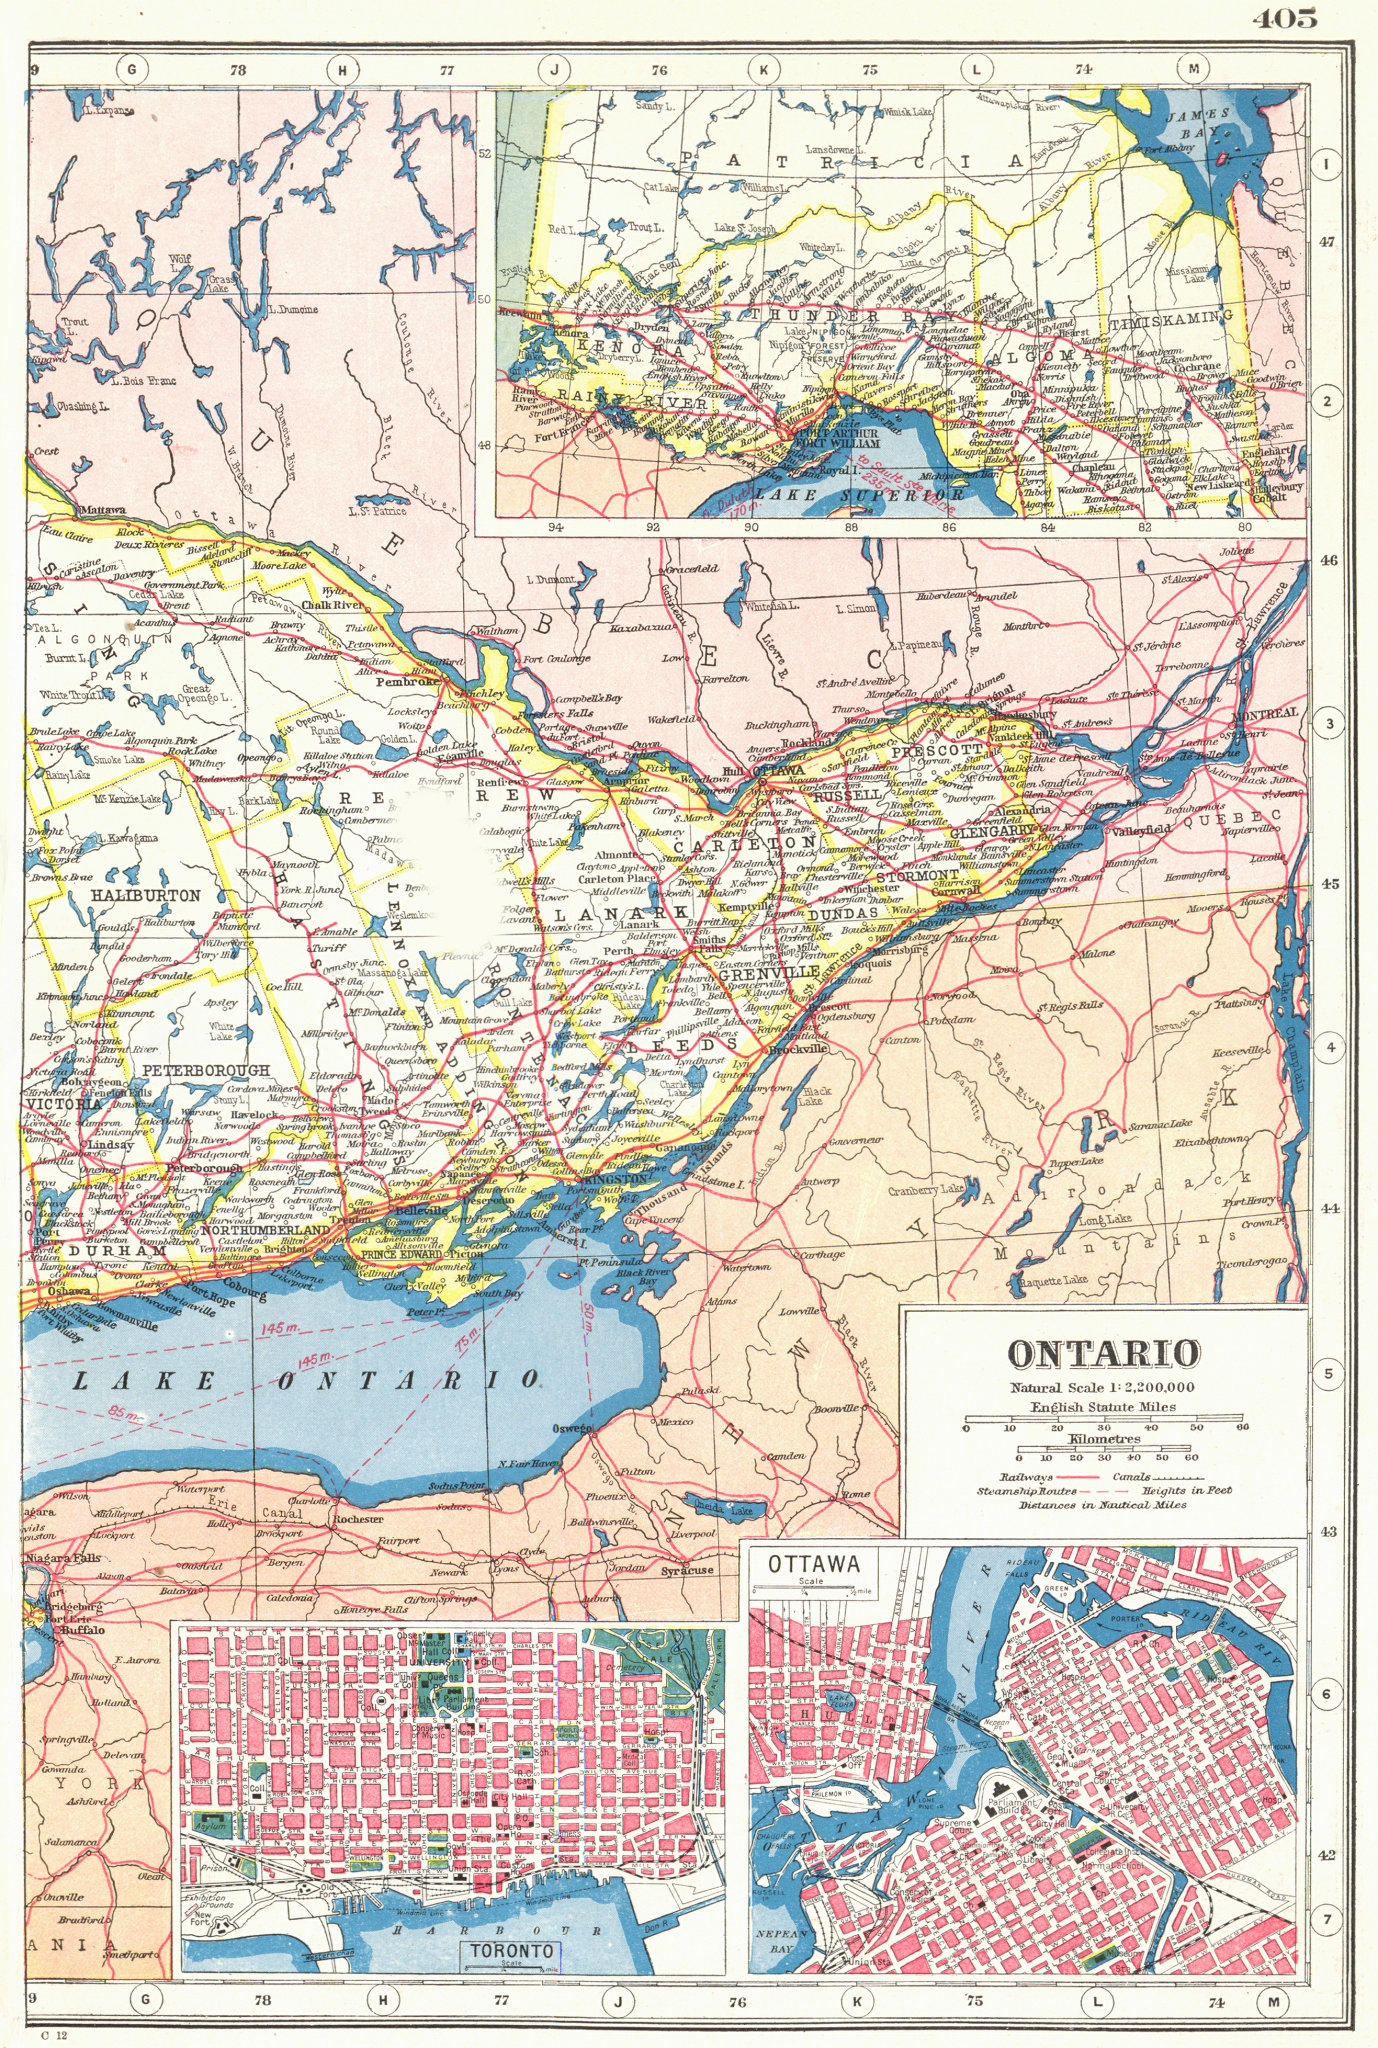 Associate Product ONTARIO EAST. Inset plans of Toronto, Ottawa. HARMSWORTH 1920 old antique map